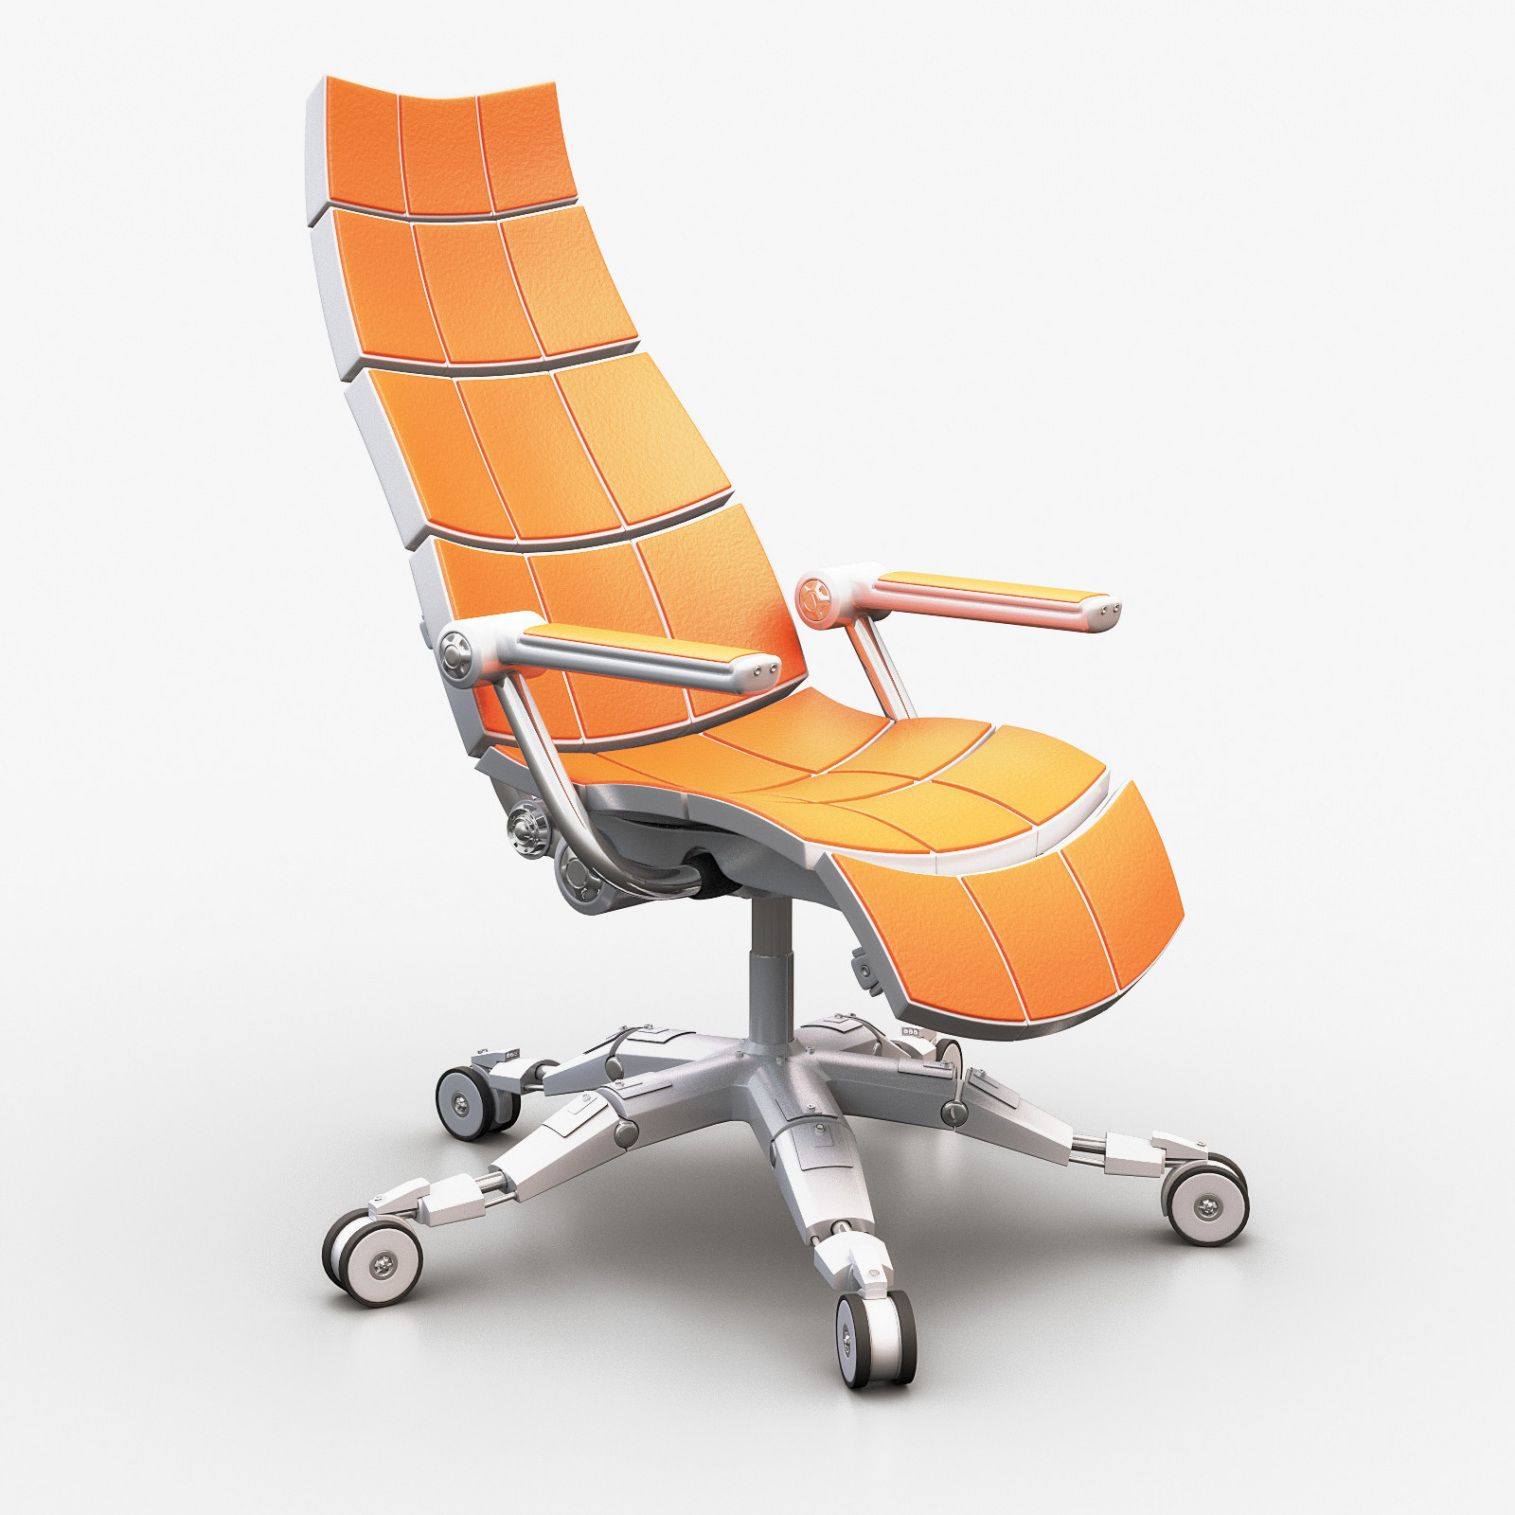 Futuristic Office Chair Expensive